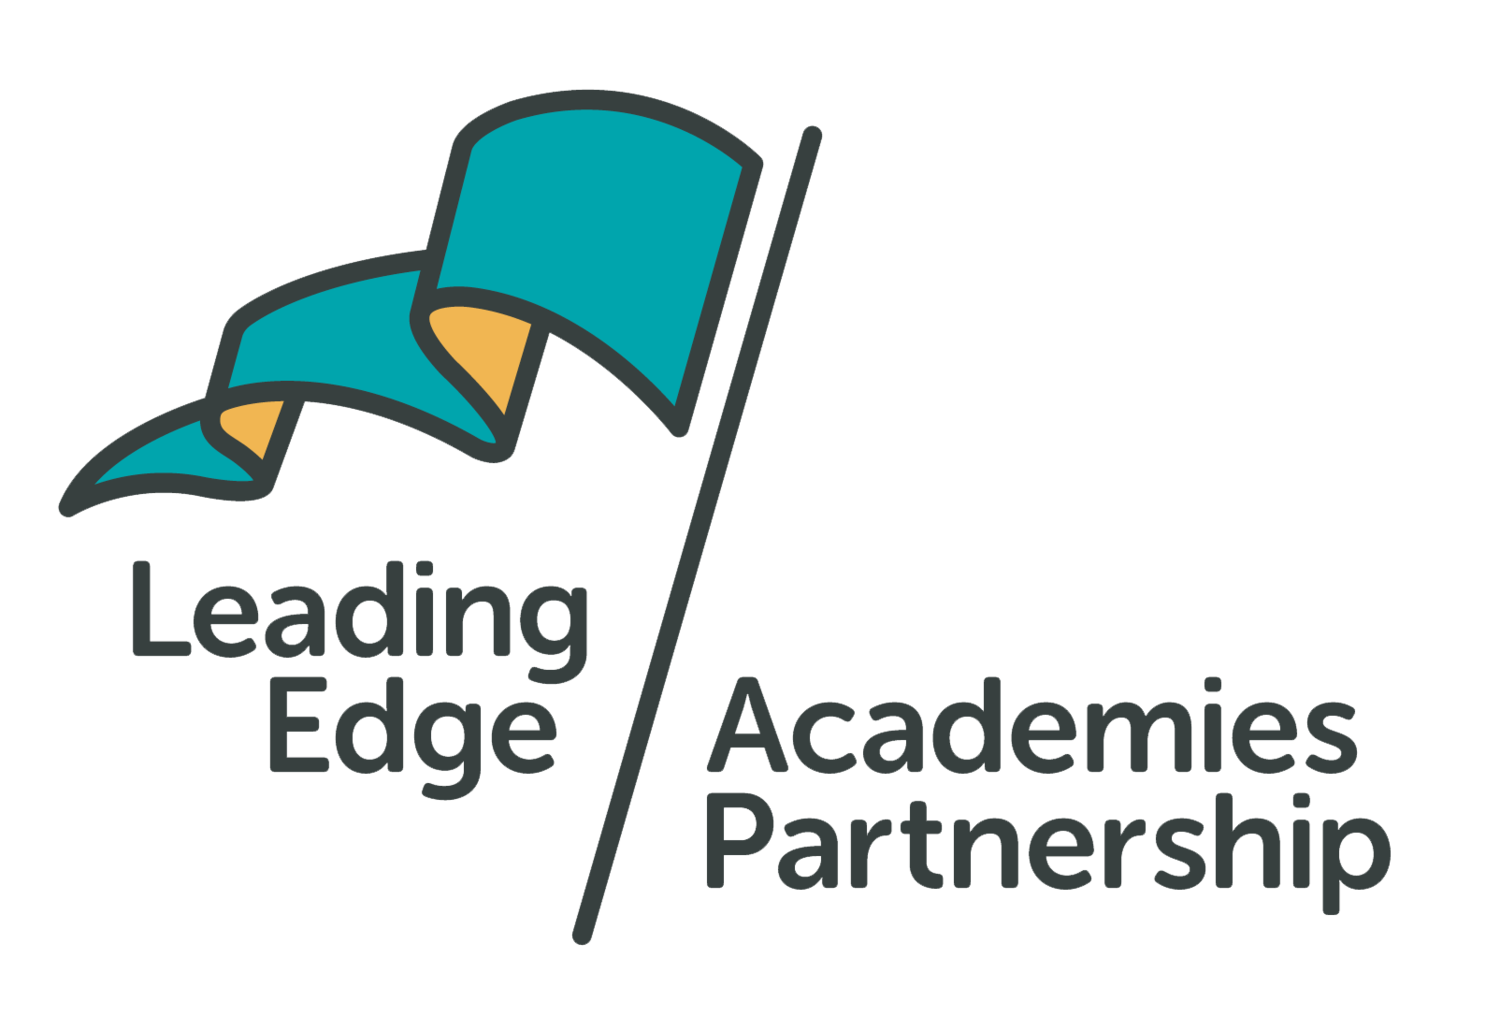 Leading Edge Academies Partnership